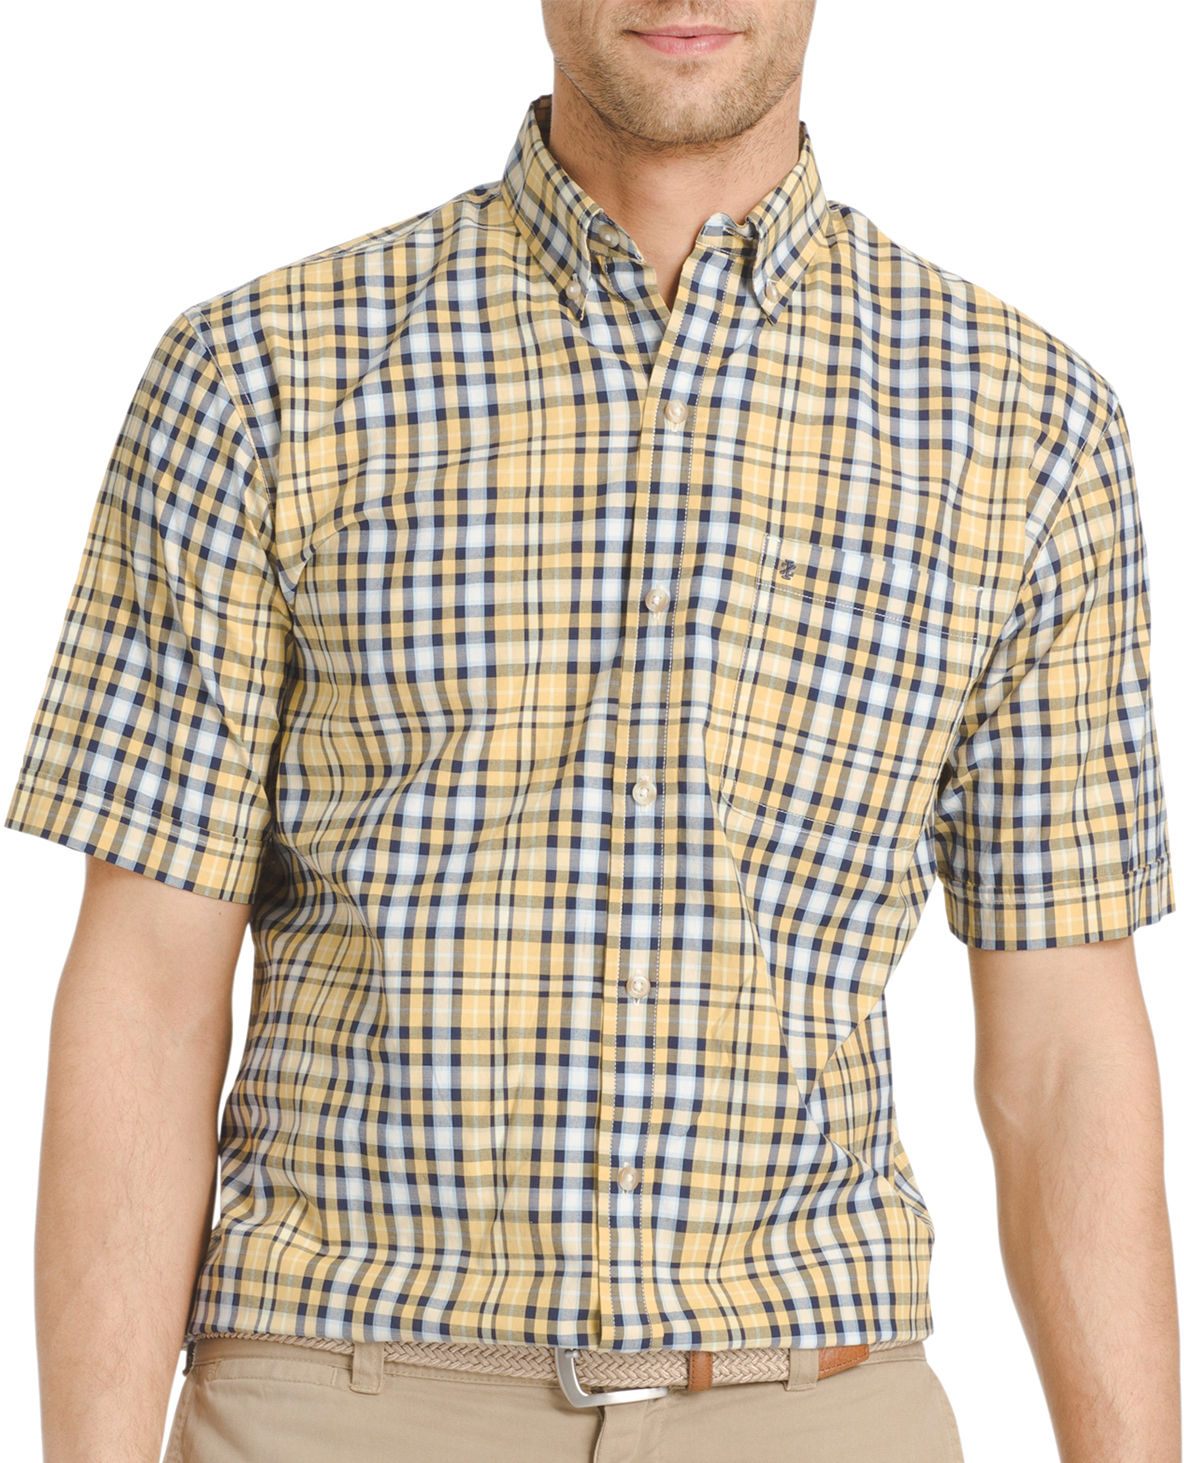 Izod Mens Moisture Wicking Poplin Plaid Shirt Ebay